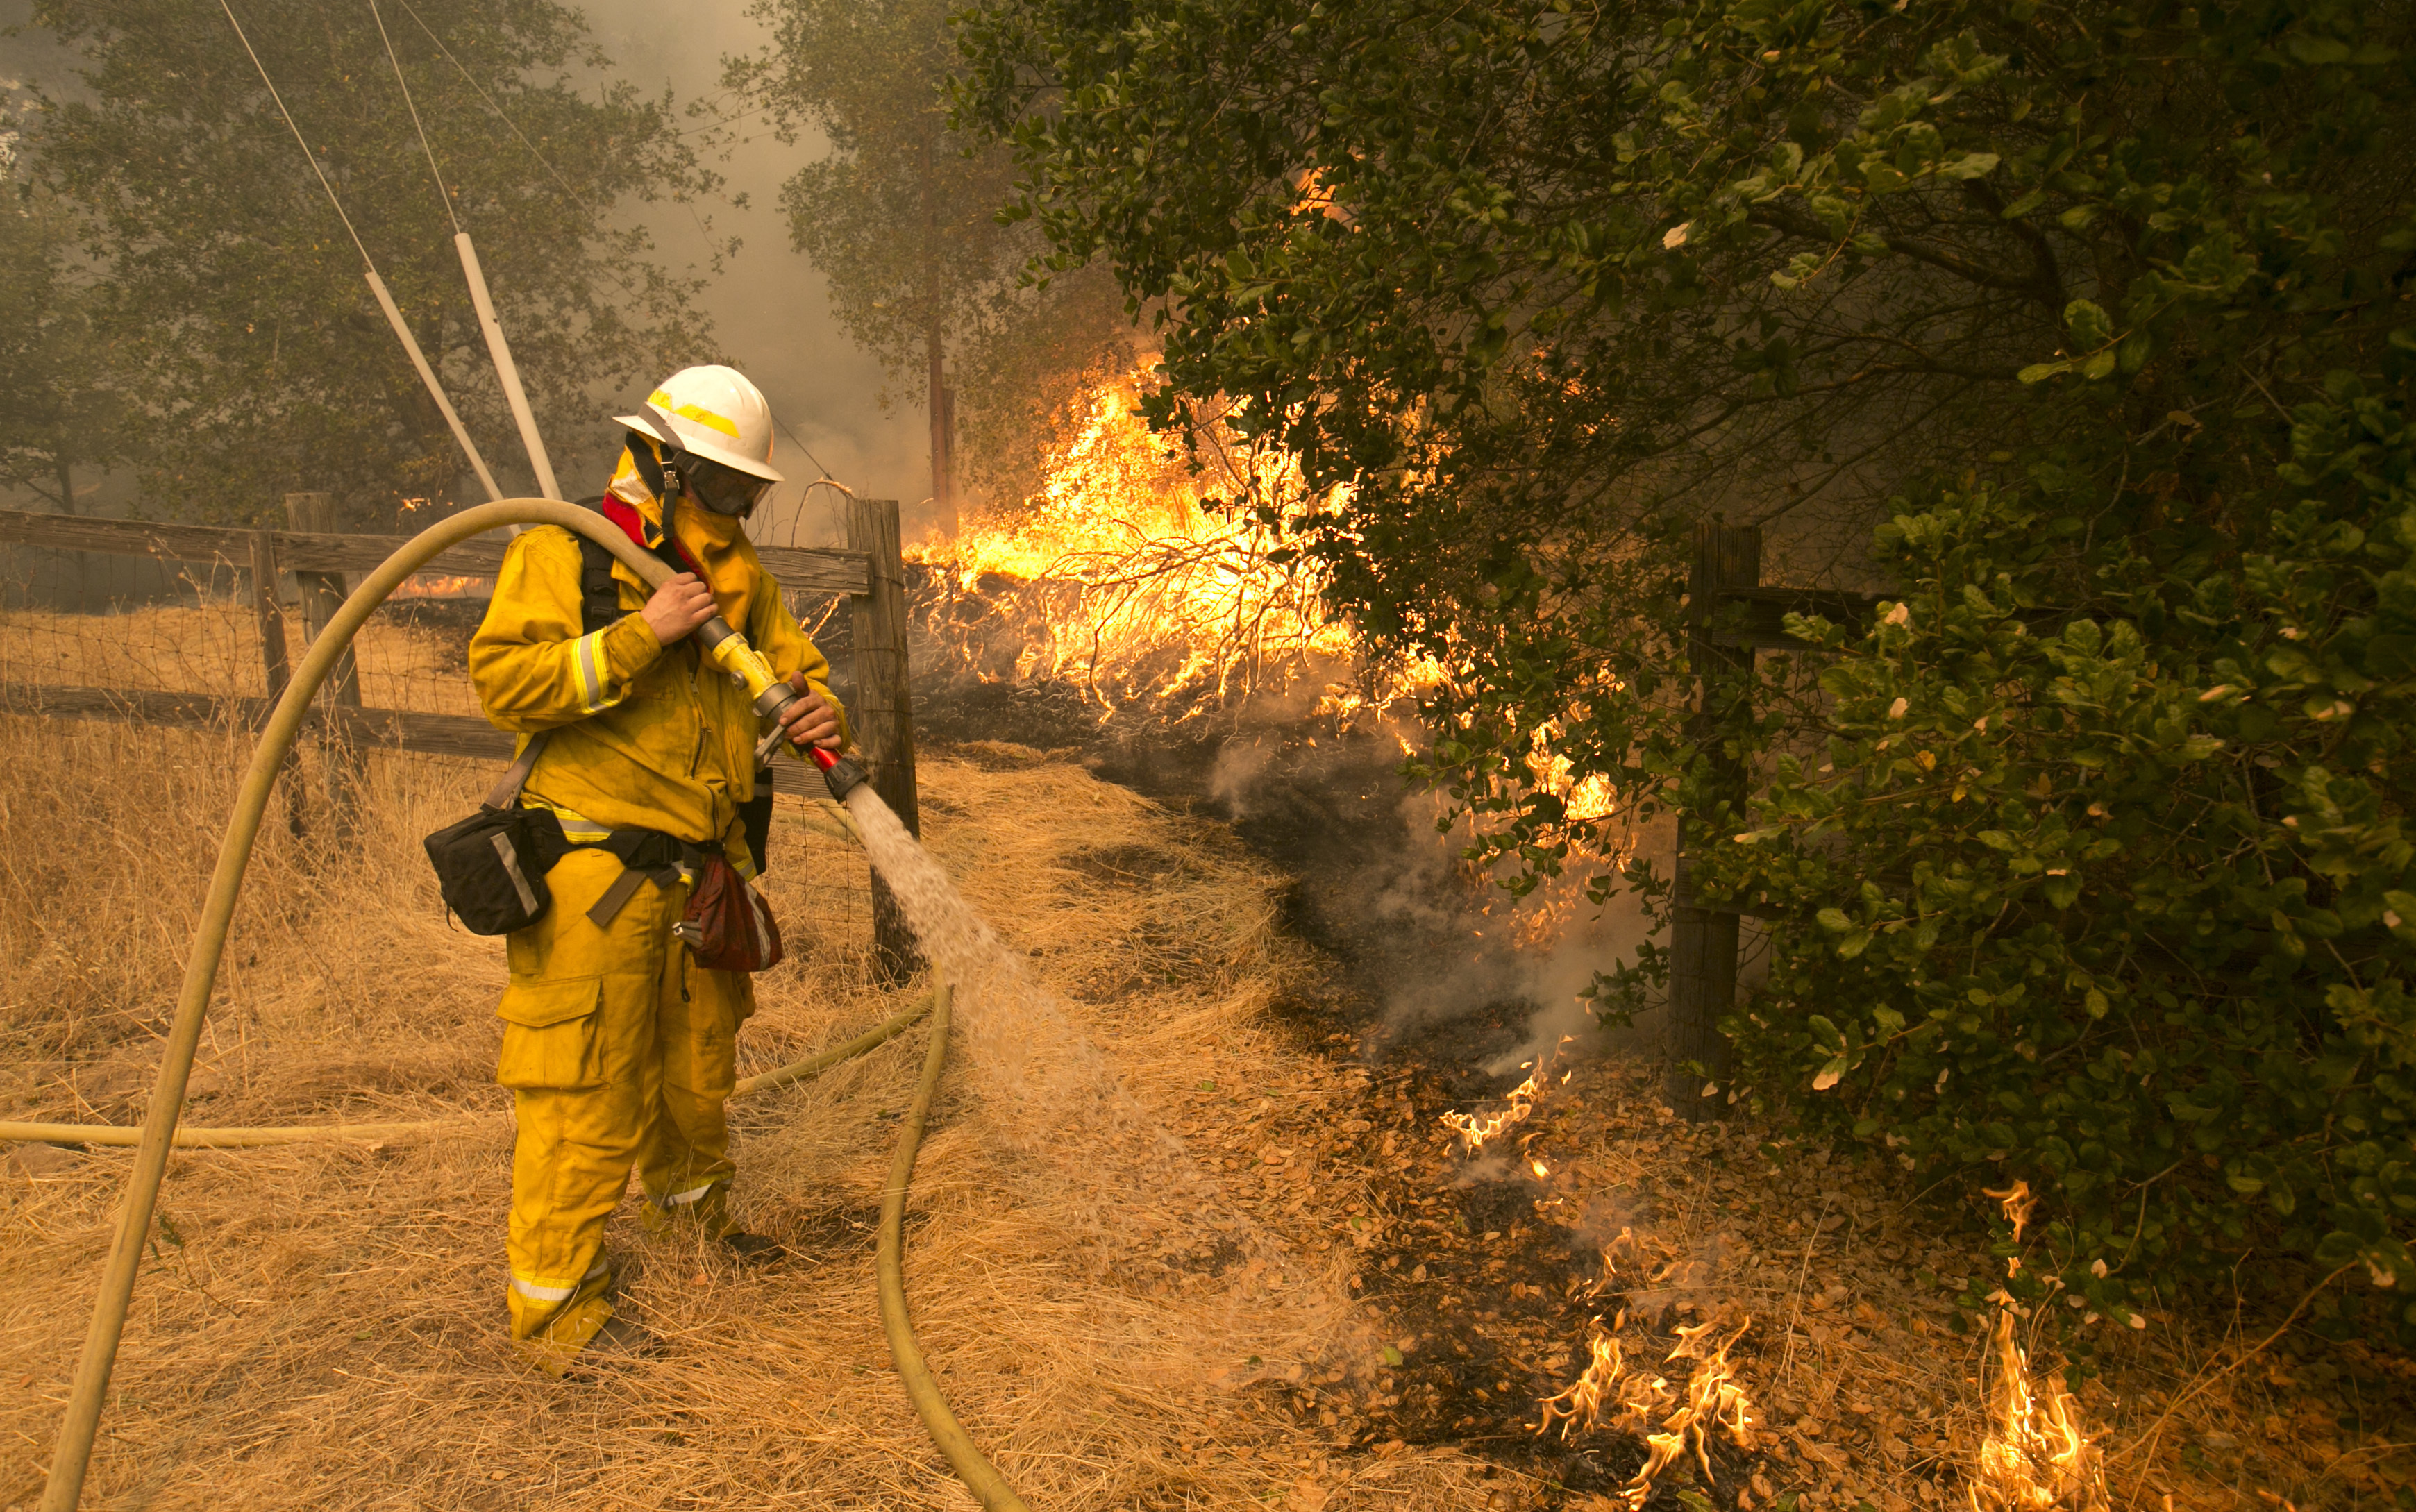 "<div class=""meta image-caption""><div class=""origin-logo origin-image none""><span>none</span></div><span class=""caption-text"">Napa County firefighter James George hoses down a fire line approaching a home Monday, Oct. 9, 2017, in Napa, Calif. (Rich Pedroncelli/AP Photo)</span></div>"